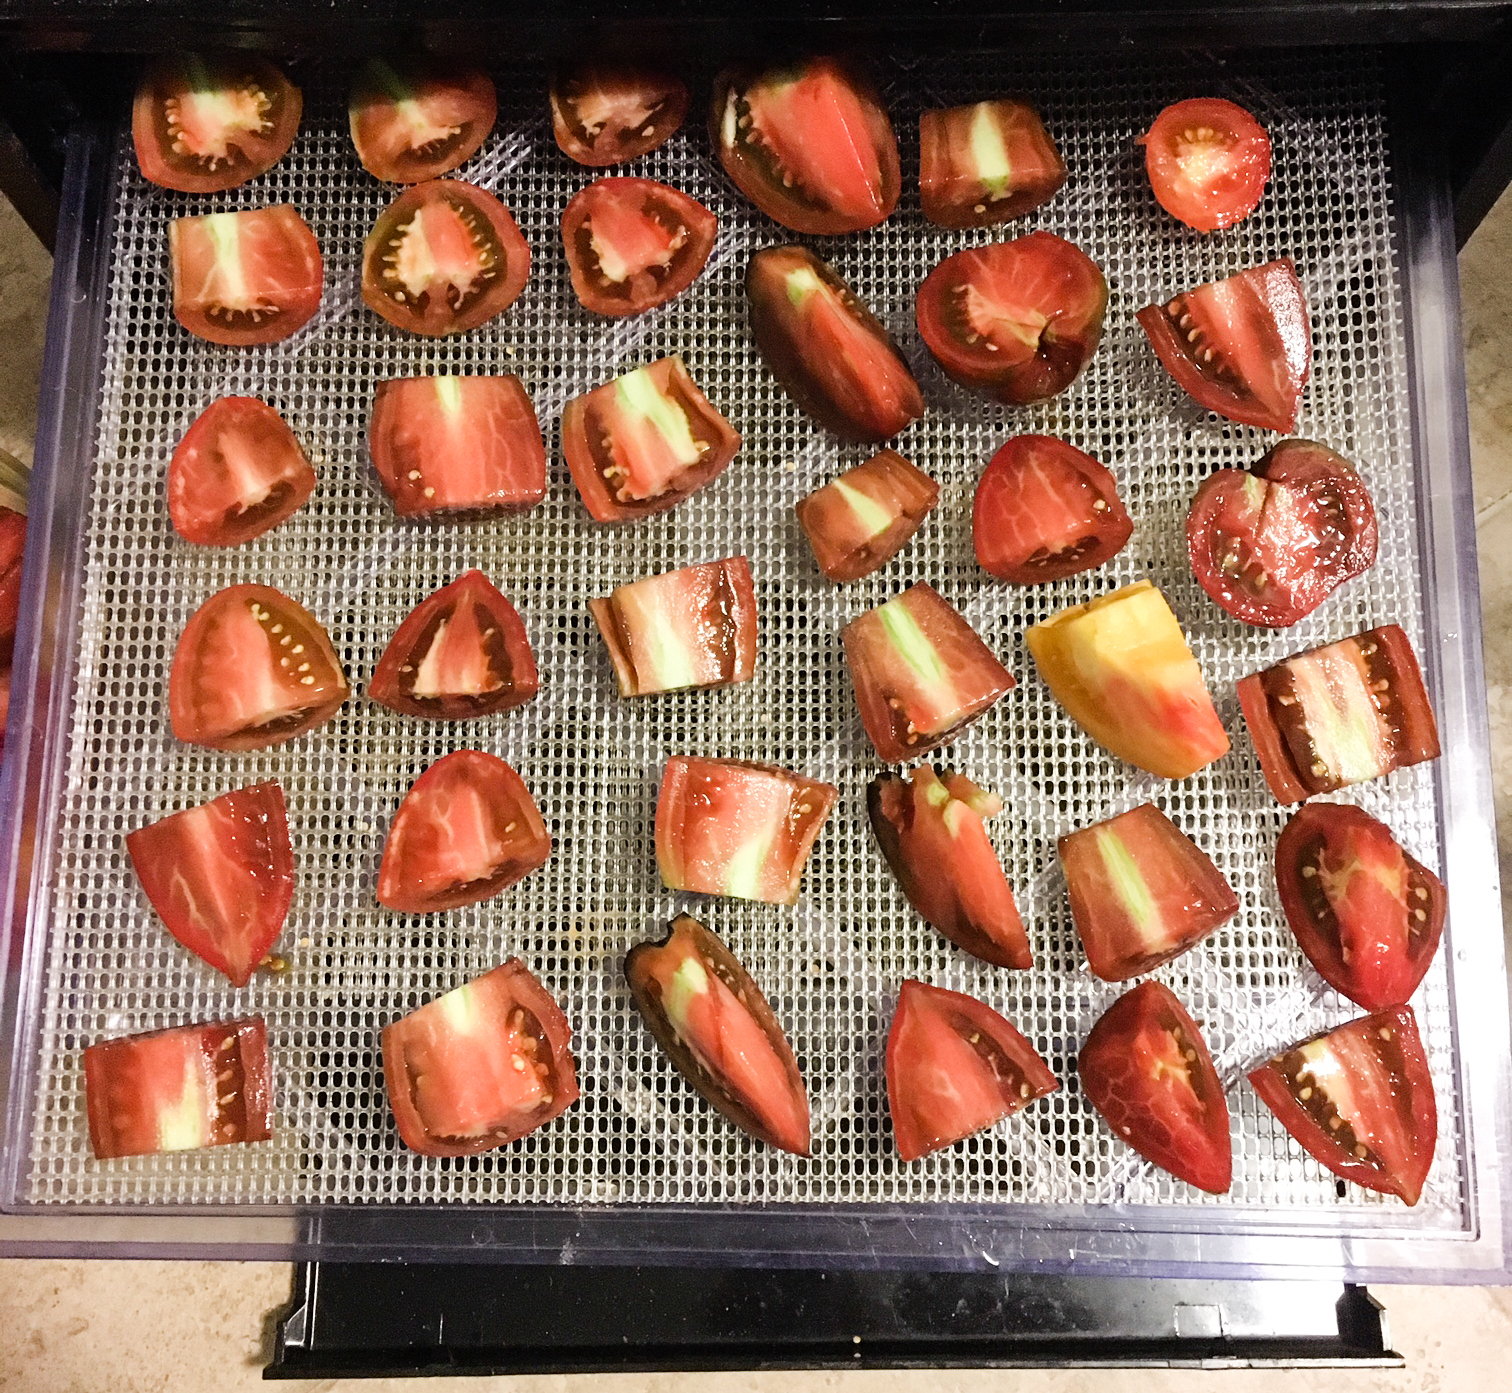 One rack of tomatoes before dehydration. What percent of a tomato is water weight?